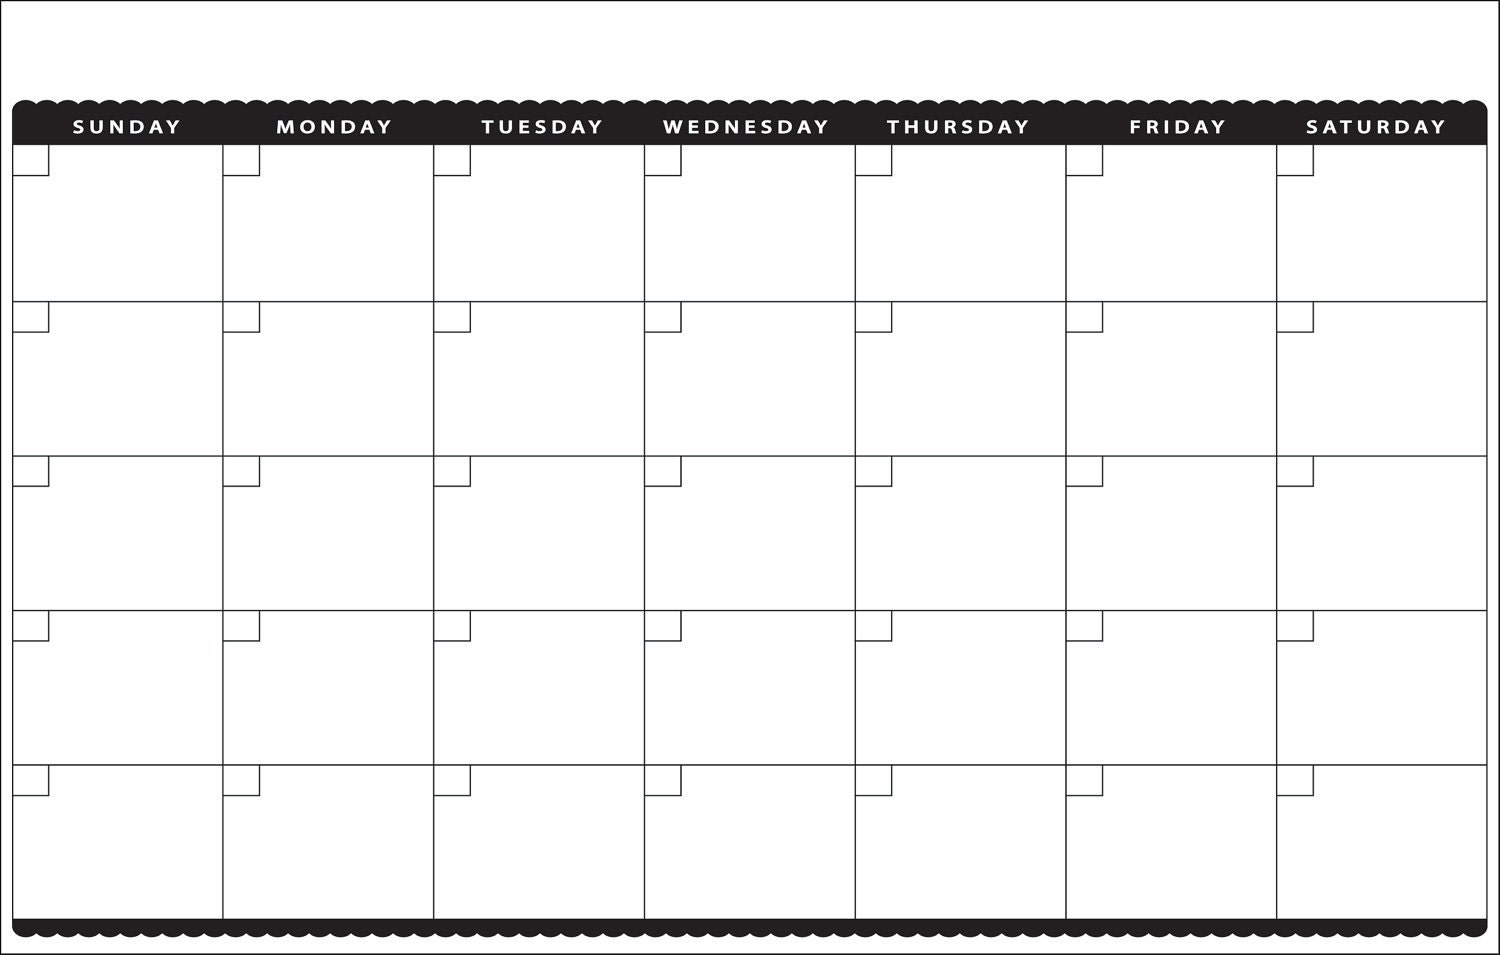 11x17 Peel and Stick Dry Erase Cute Blank